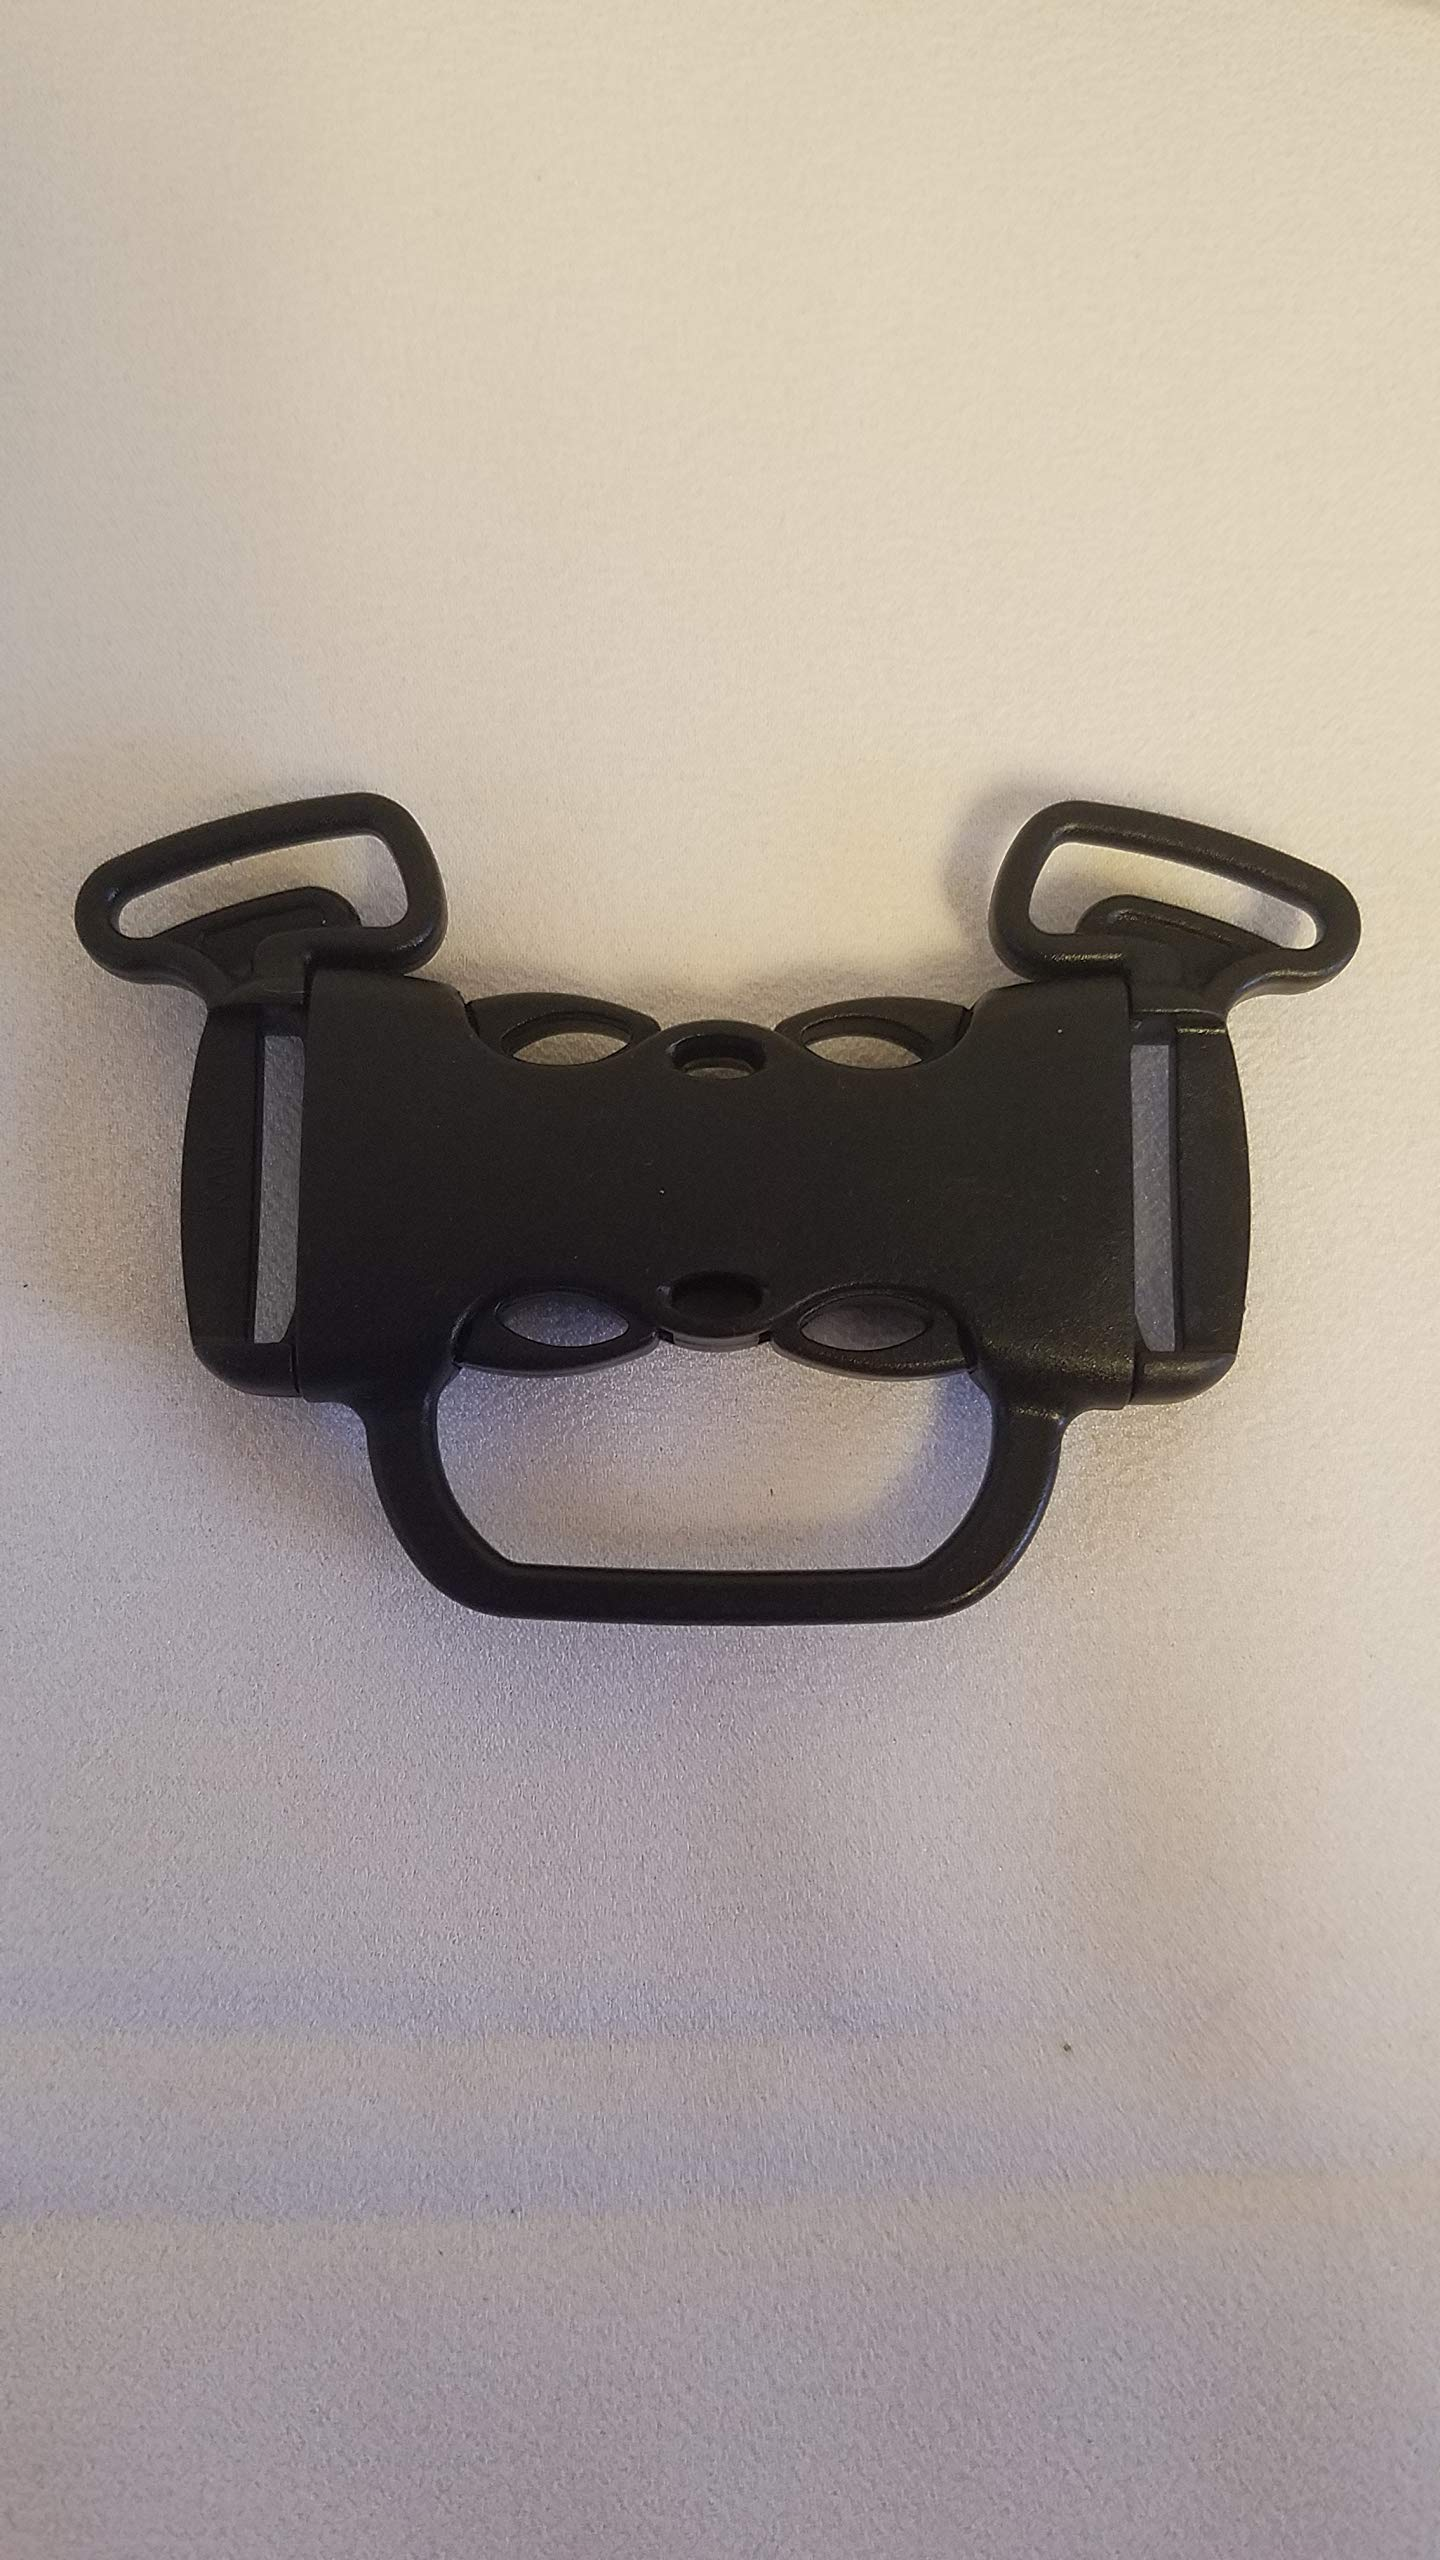 Replacement Parts/Accessories to fit Kolcraft Strollers and Car Seats Products for Babies, Toddlers, and Children (Stroller Harness Buckle)